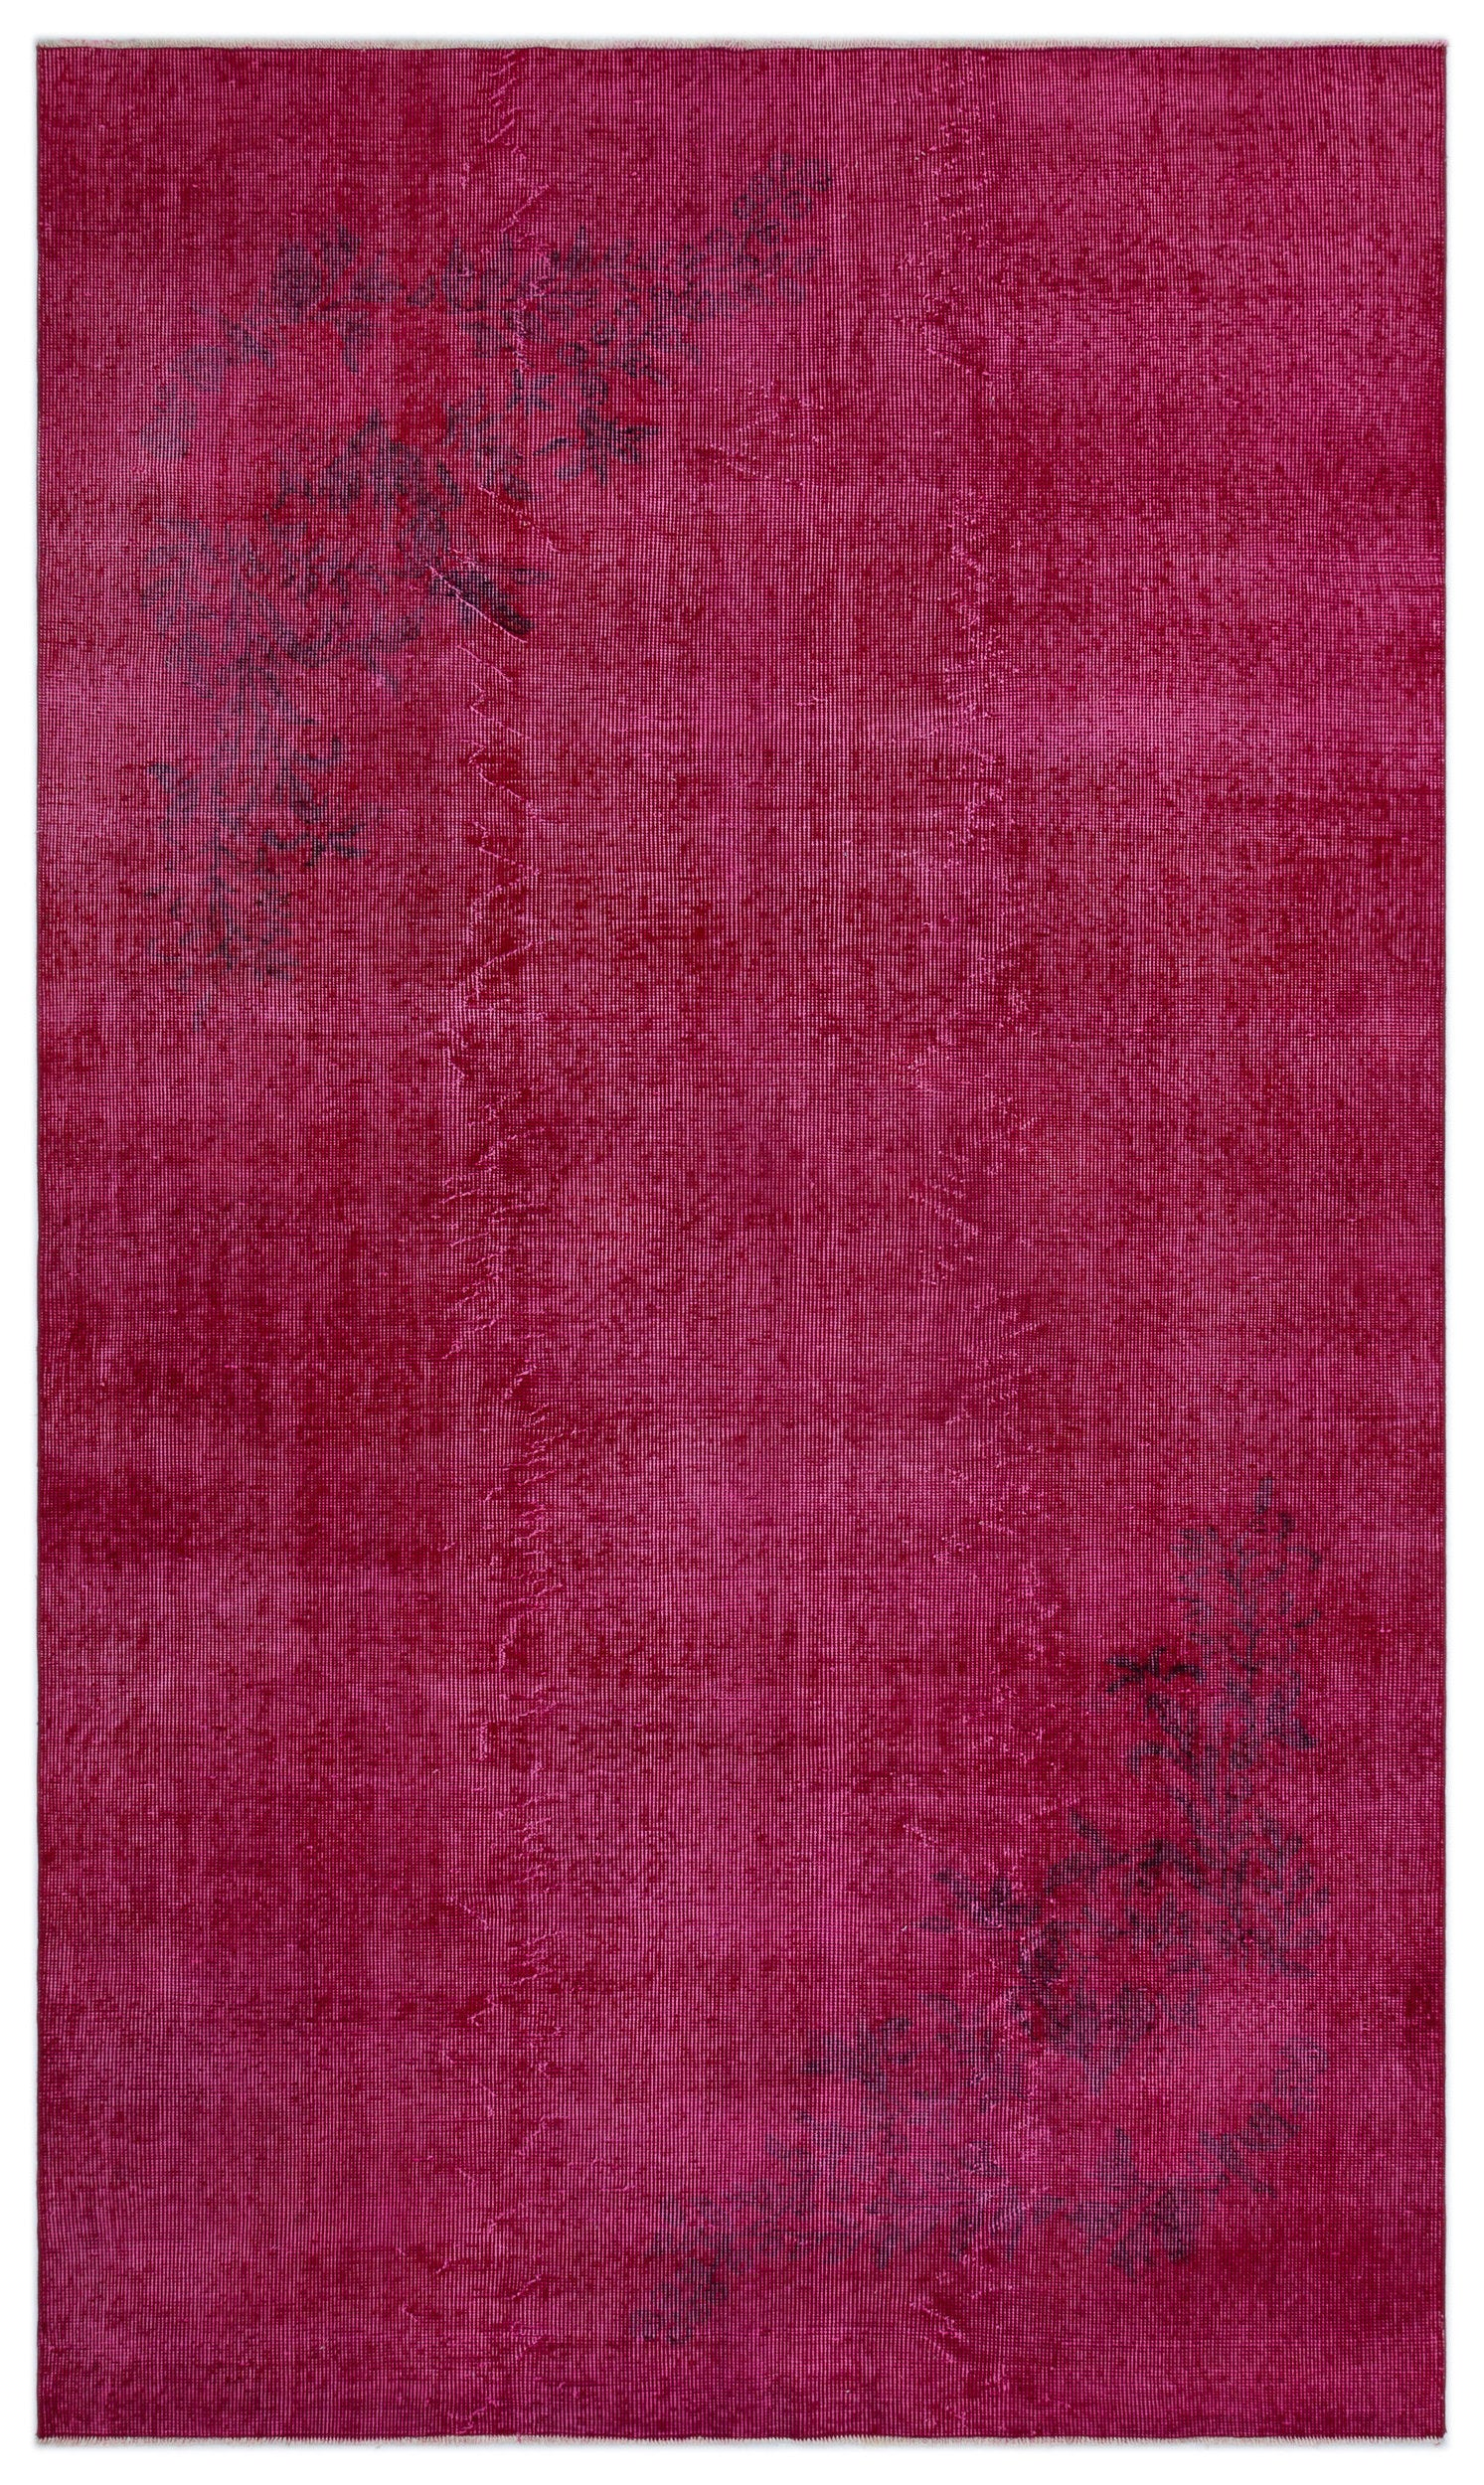 Pink Over Dyed Vintage Rug 4'11'' x 8'7'' ft 151 x 262 cm